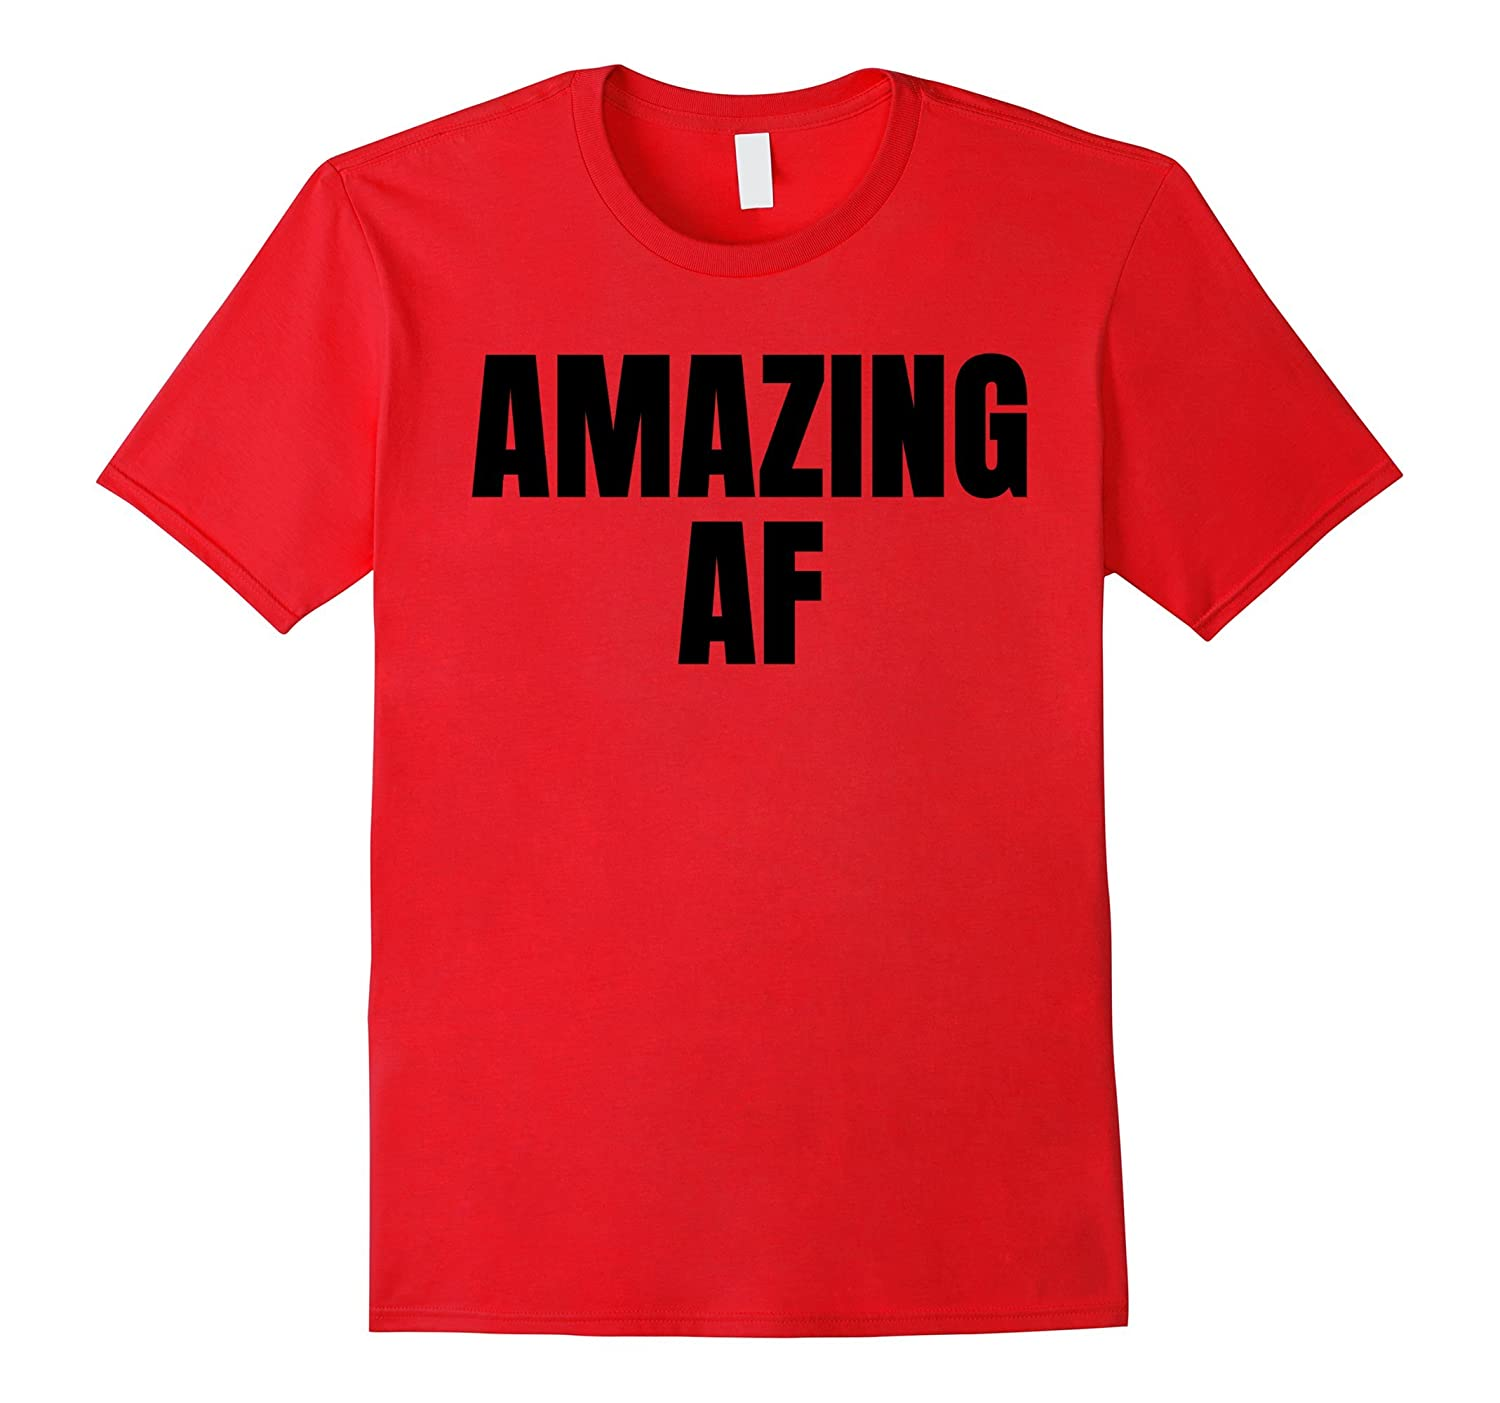 Amazing AF T Shirt TShirt T-Shirt New AF Tees For Women Men-4LVS